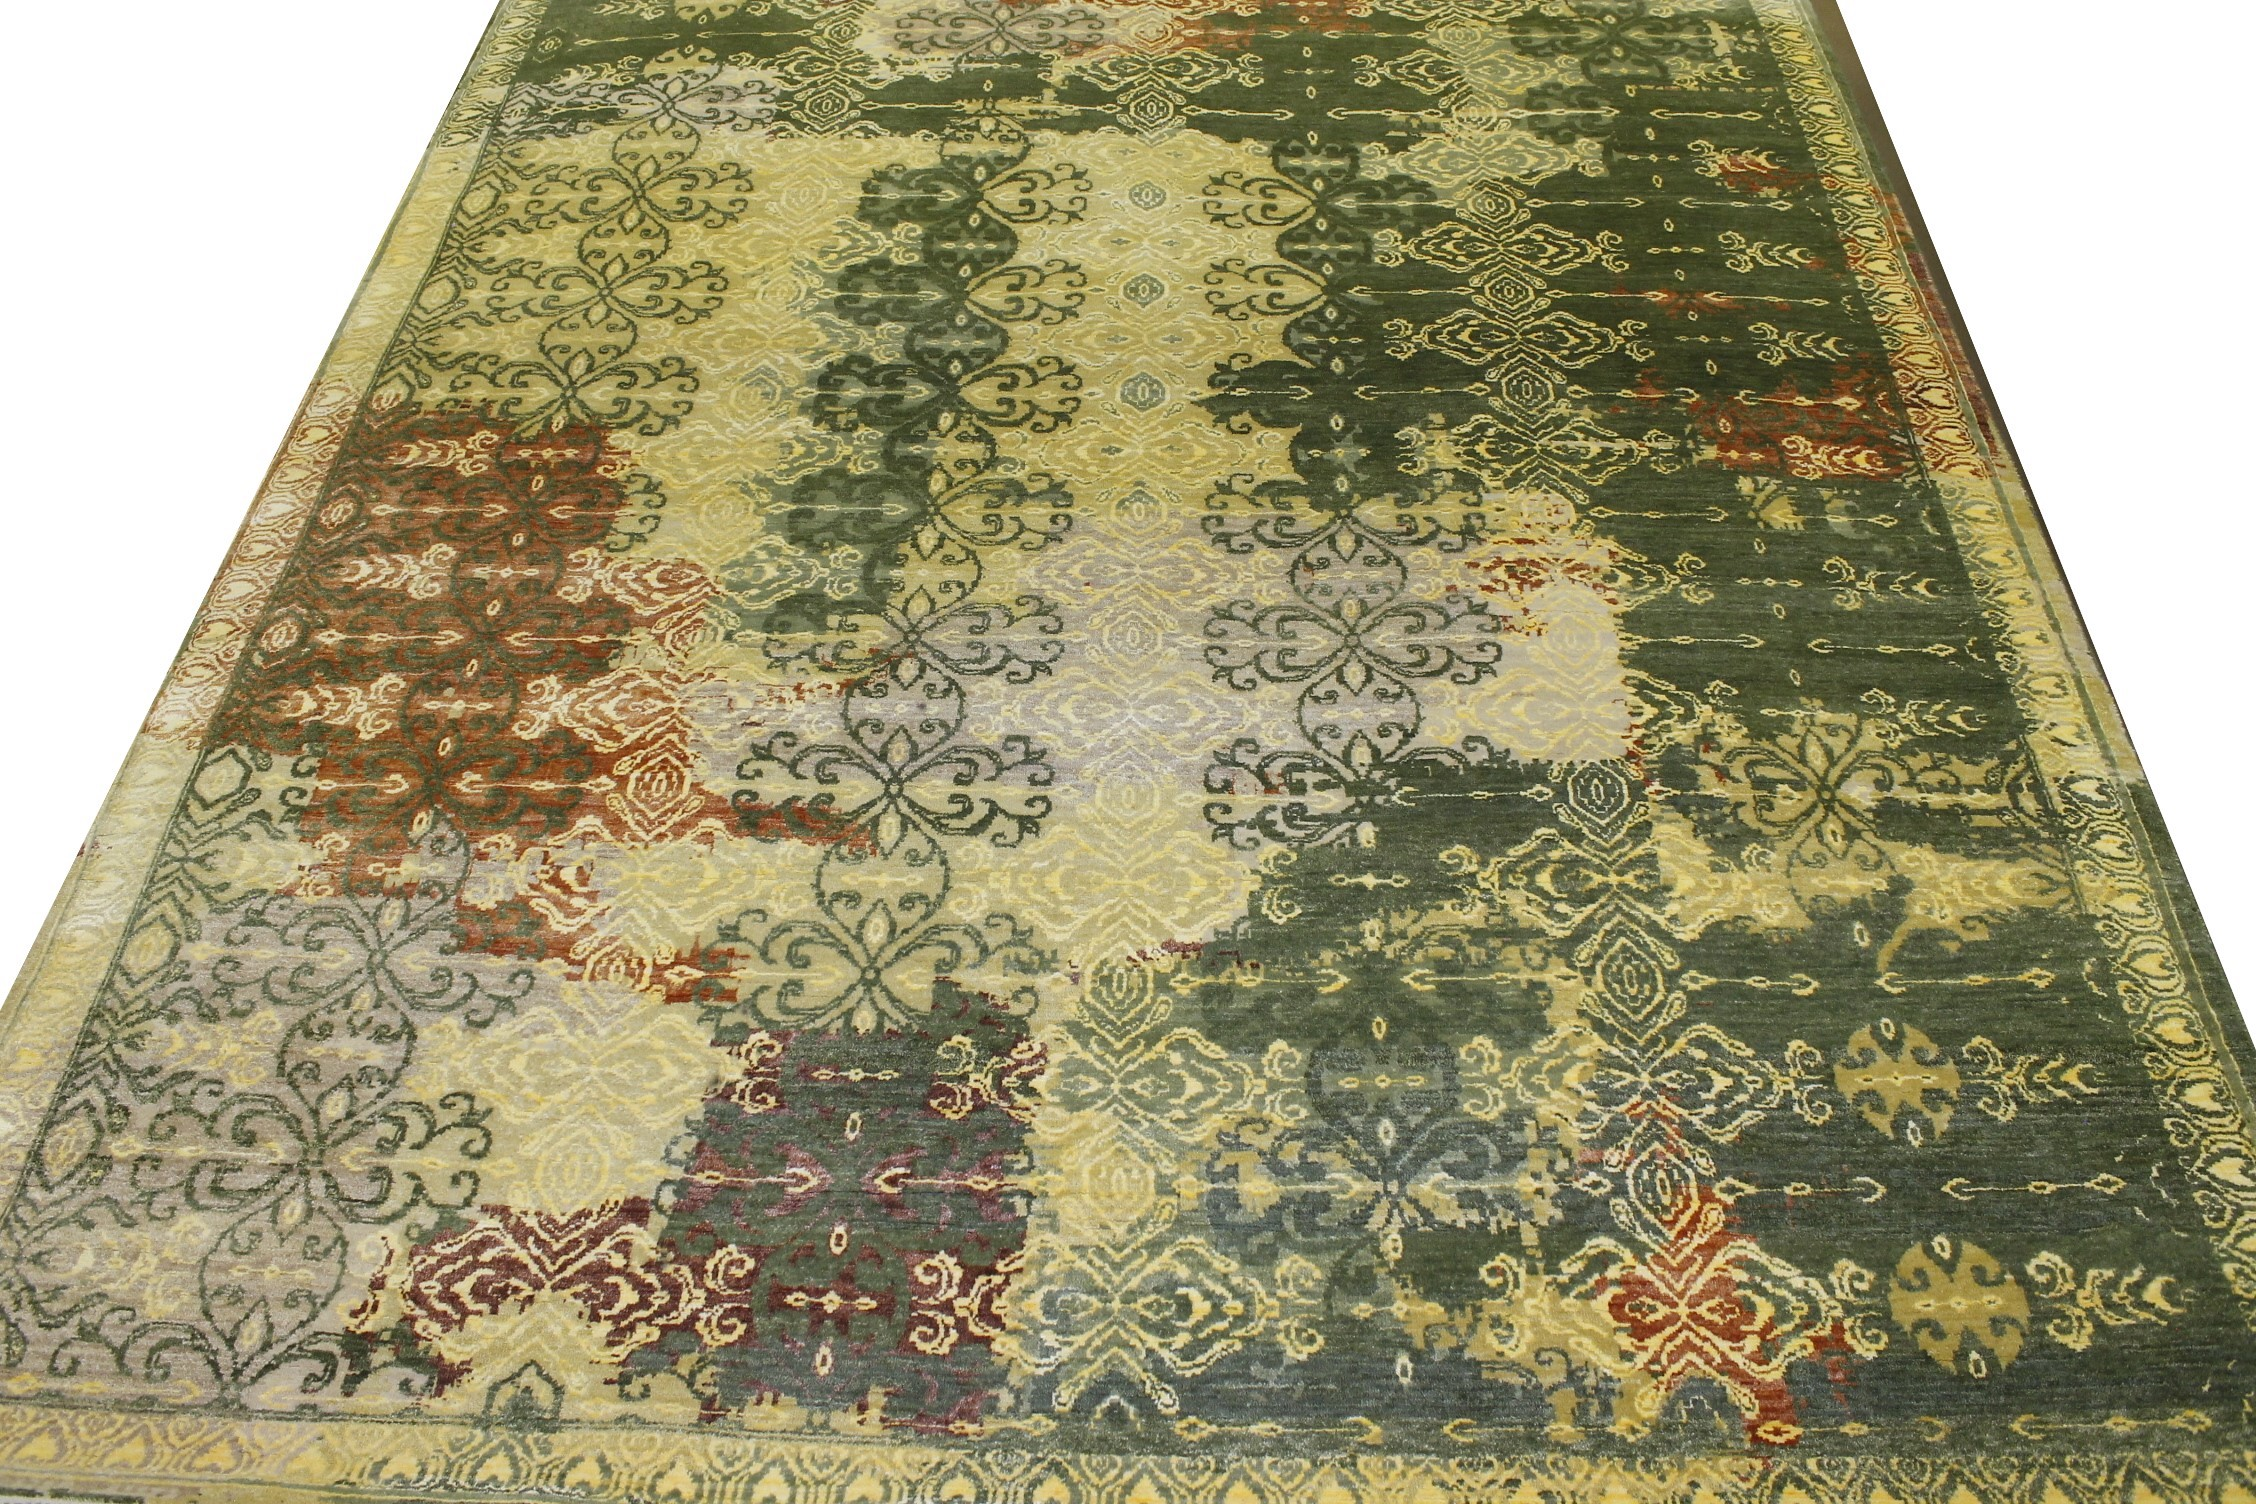 8x10 Contemporary Hand Knotted Wool Area Rug - MR022210